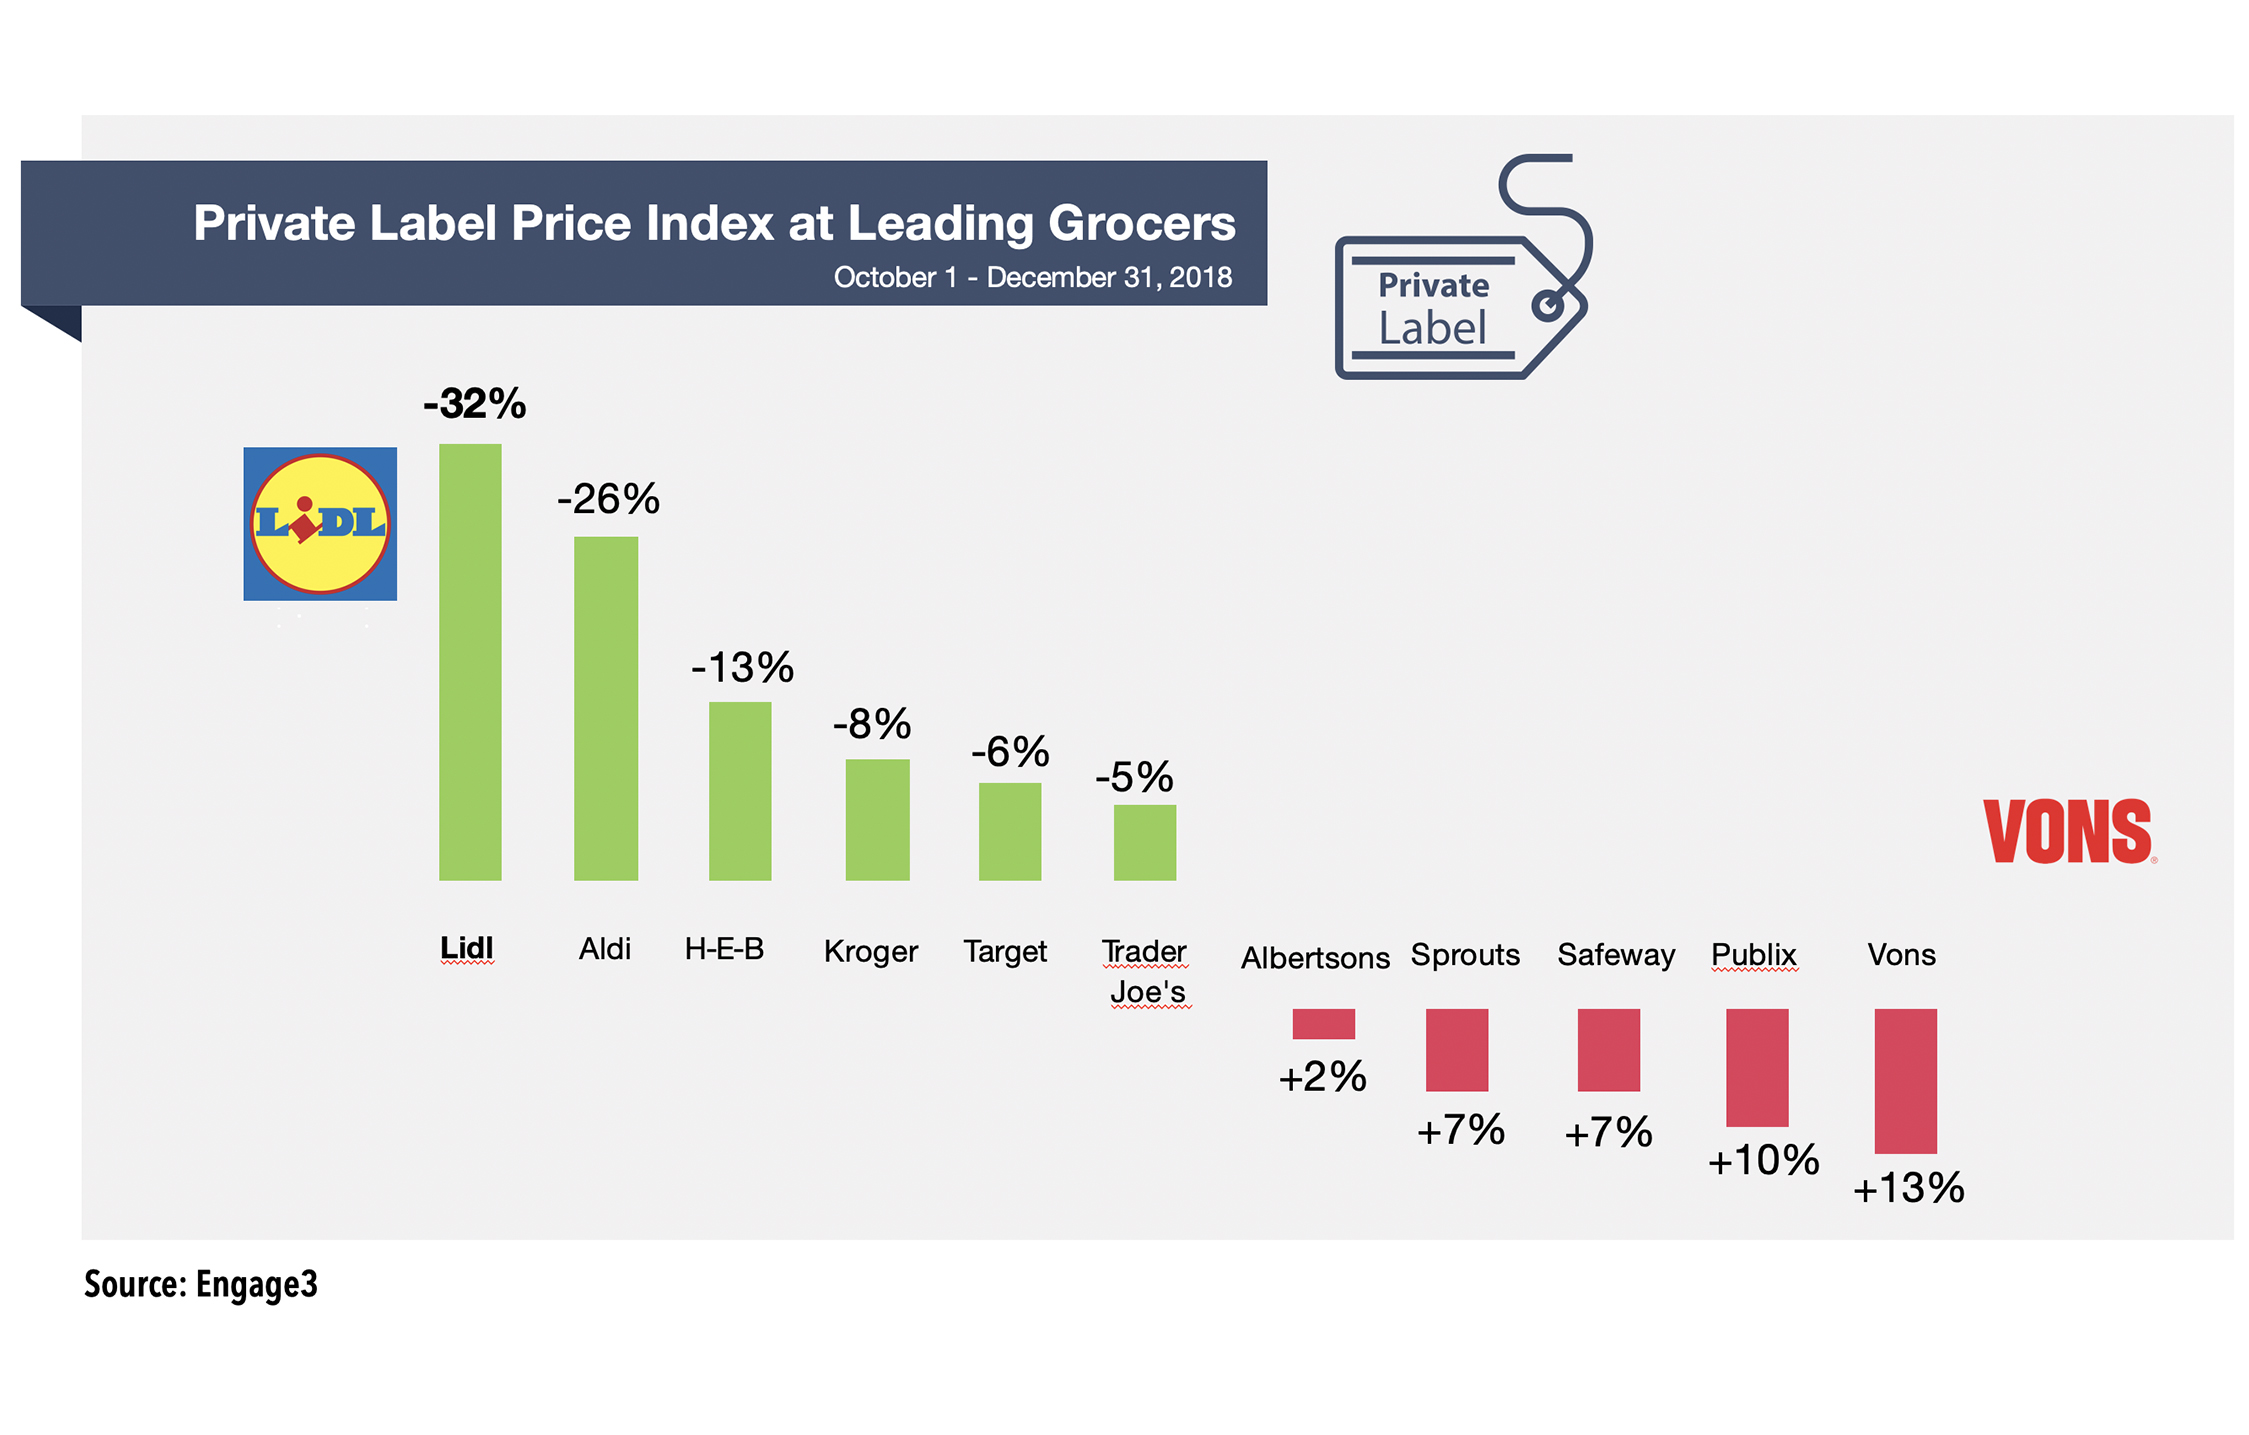 Engage3 Q4 2018 Pricing Report: Lidl Led in Private Labels